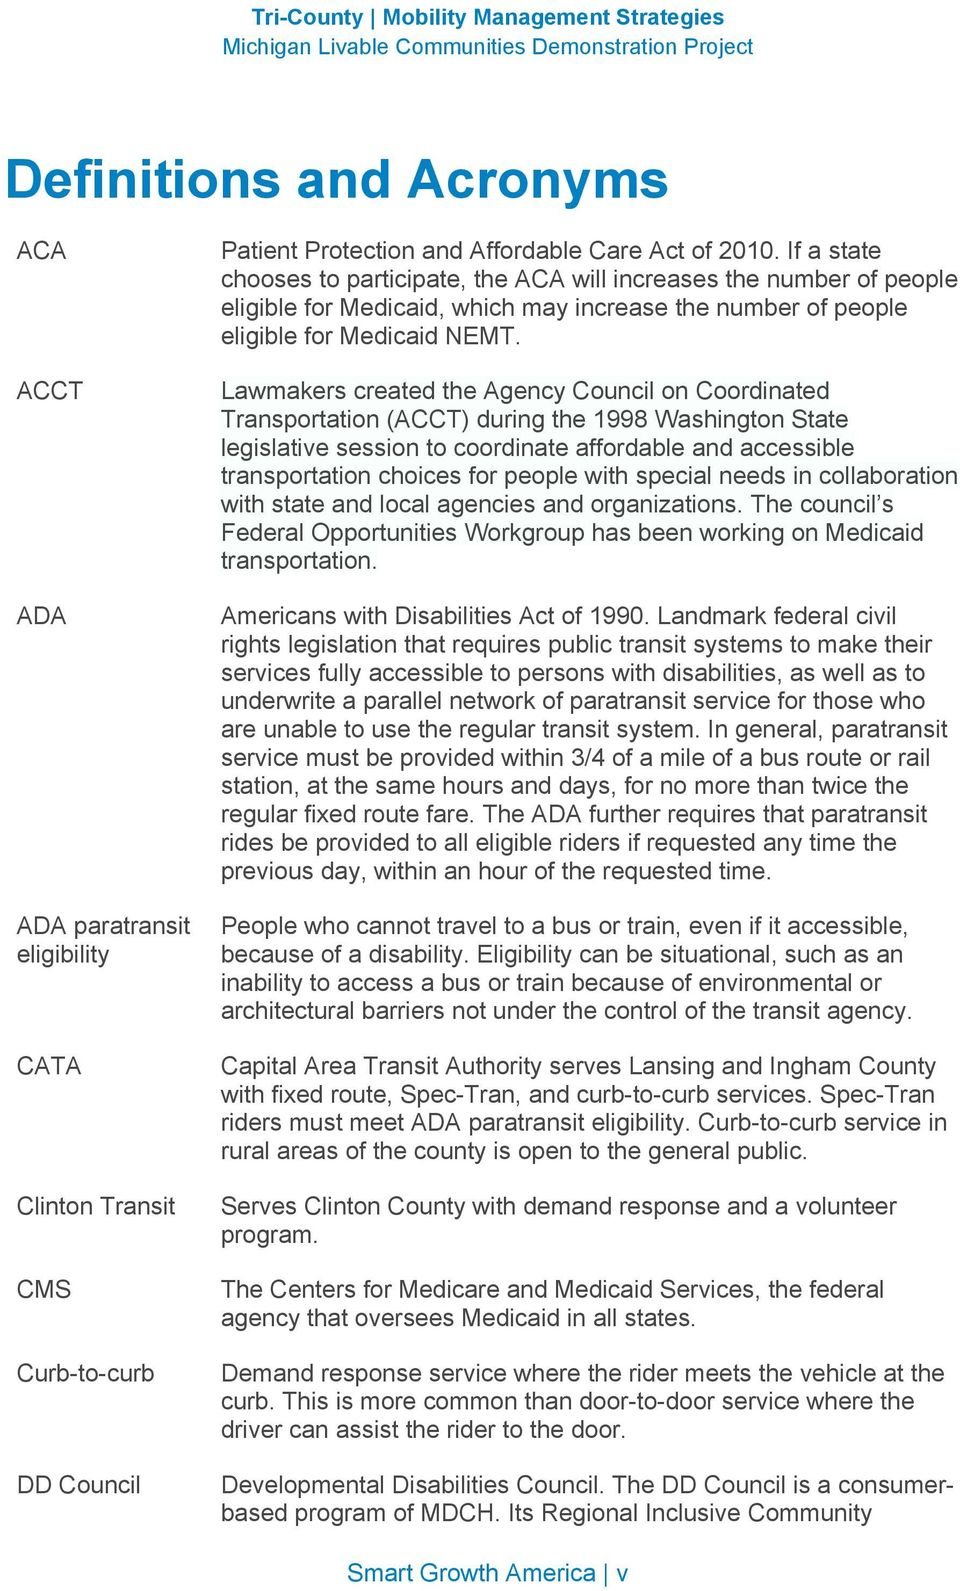 Lawmakers created the Agency Council on Coordinated Transportation (ACCT) during the 1998 Washington State legislative session to coordinate affordable and accessible transportation choices for